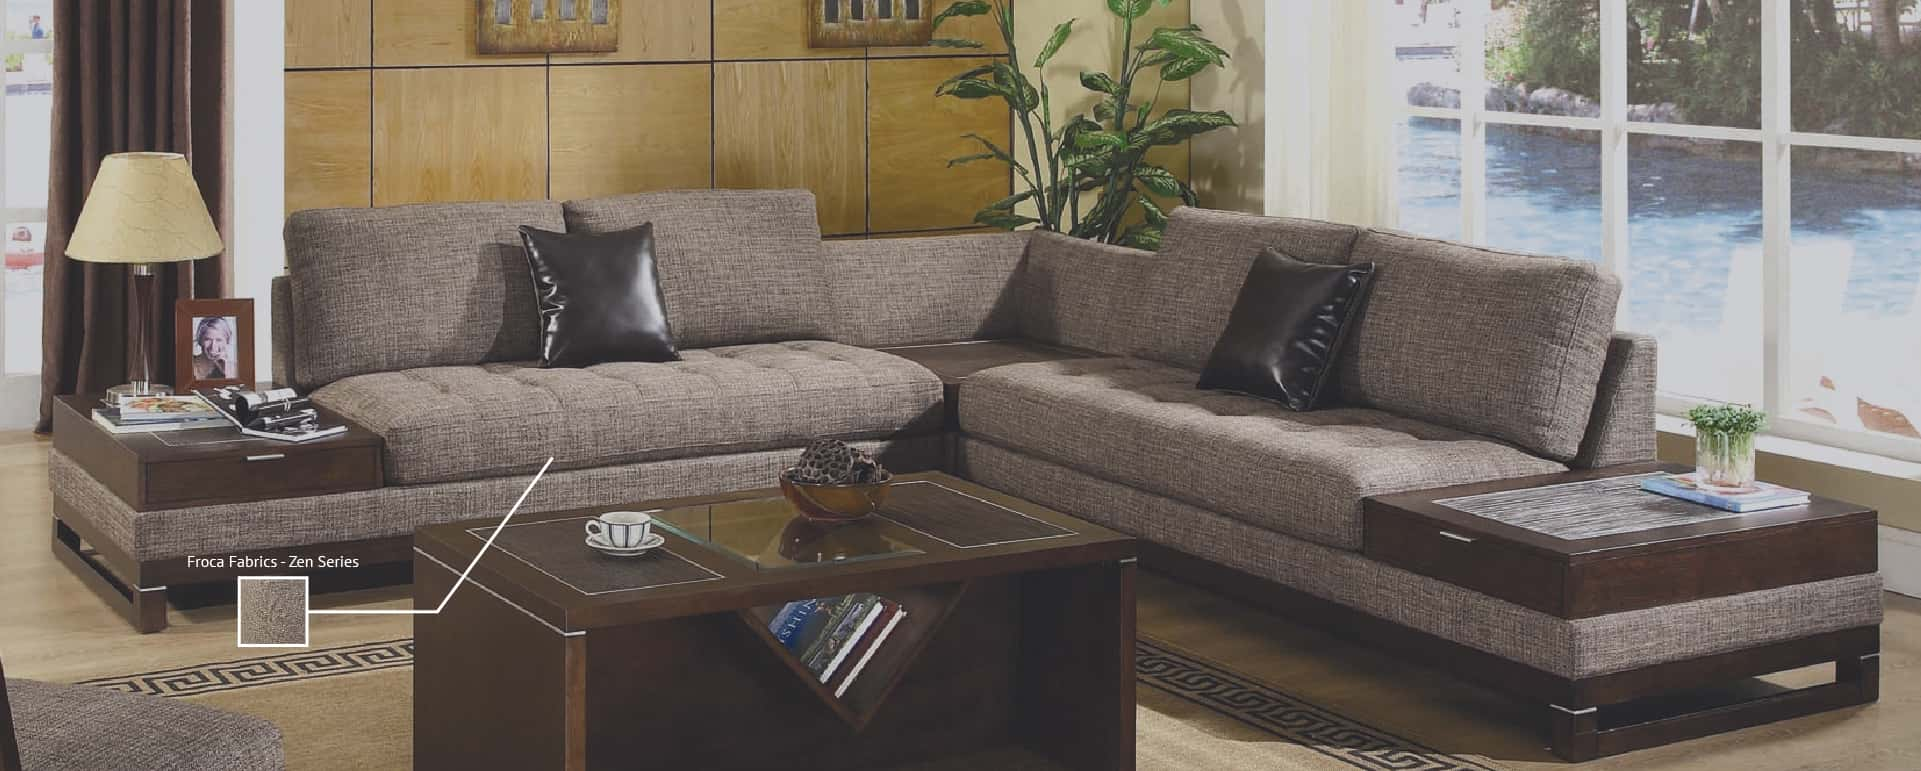 fabric sofa cover malaysia corner uk delivery top and leather supplier siah